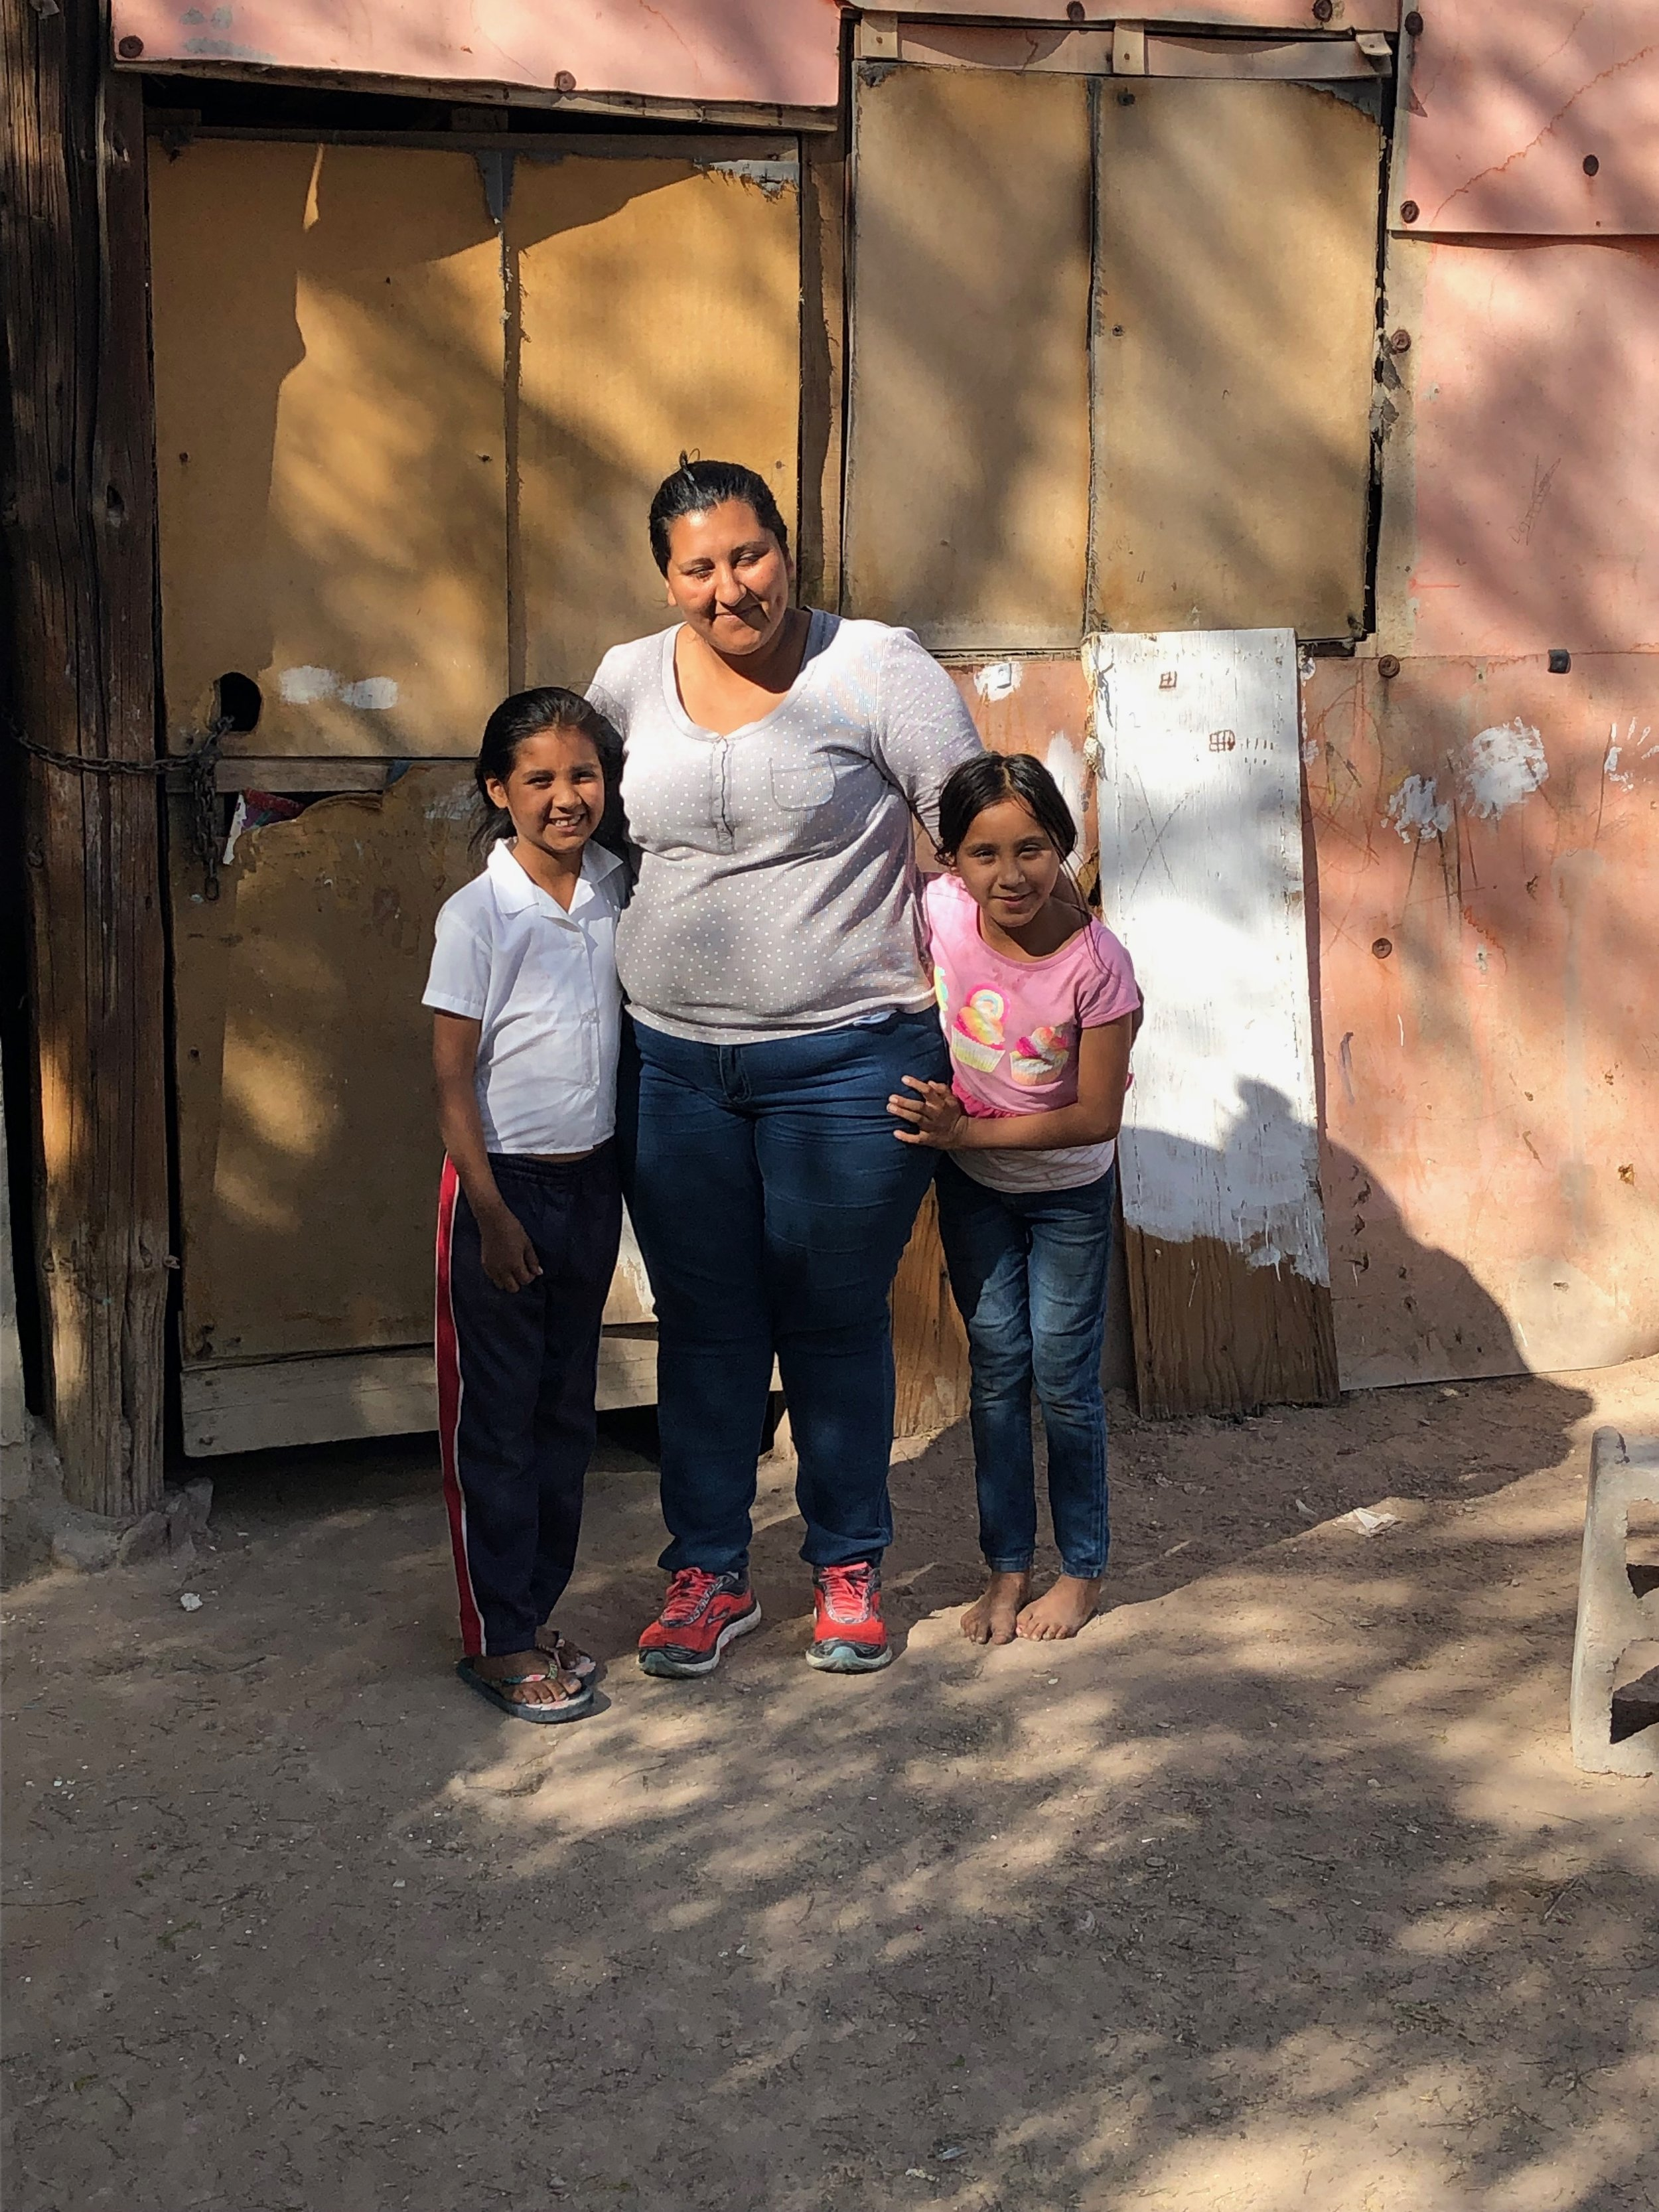 Maria and two of her girls. Maria is a single mom and our cook. We sponsor all four of her girls into the school.